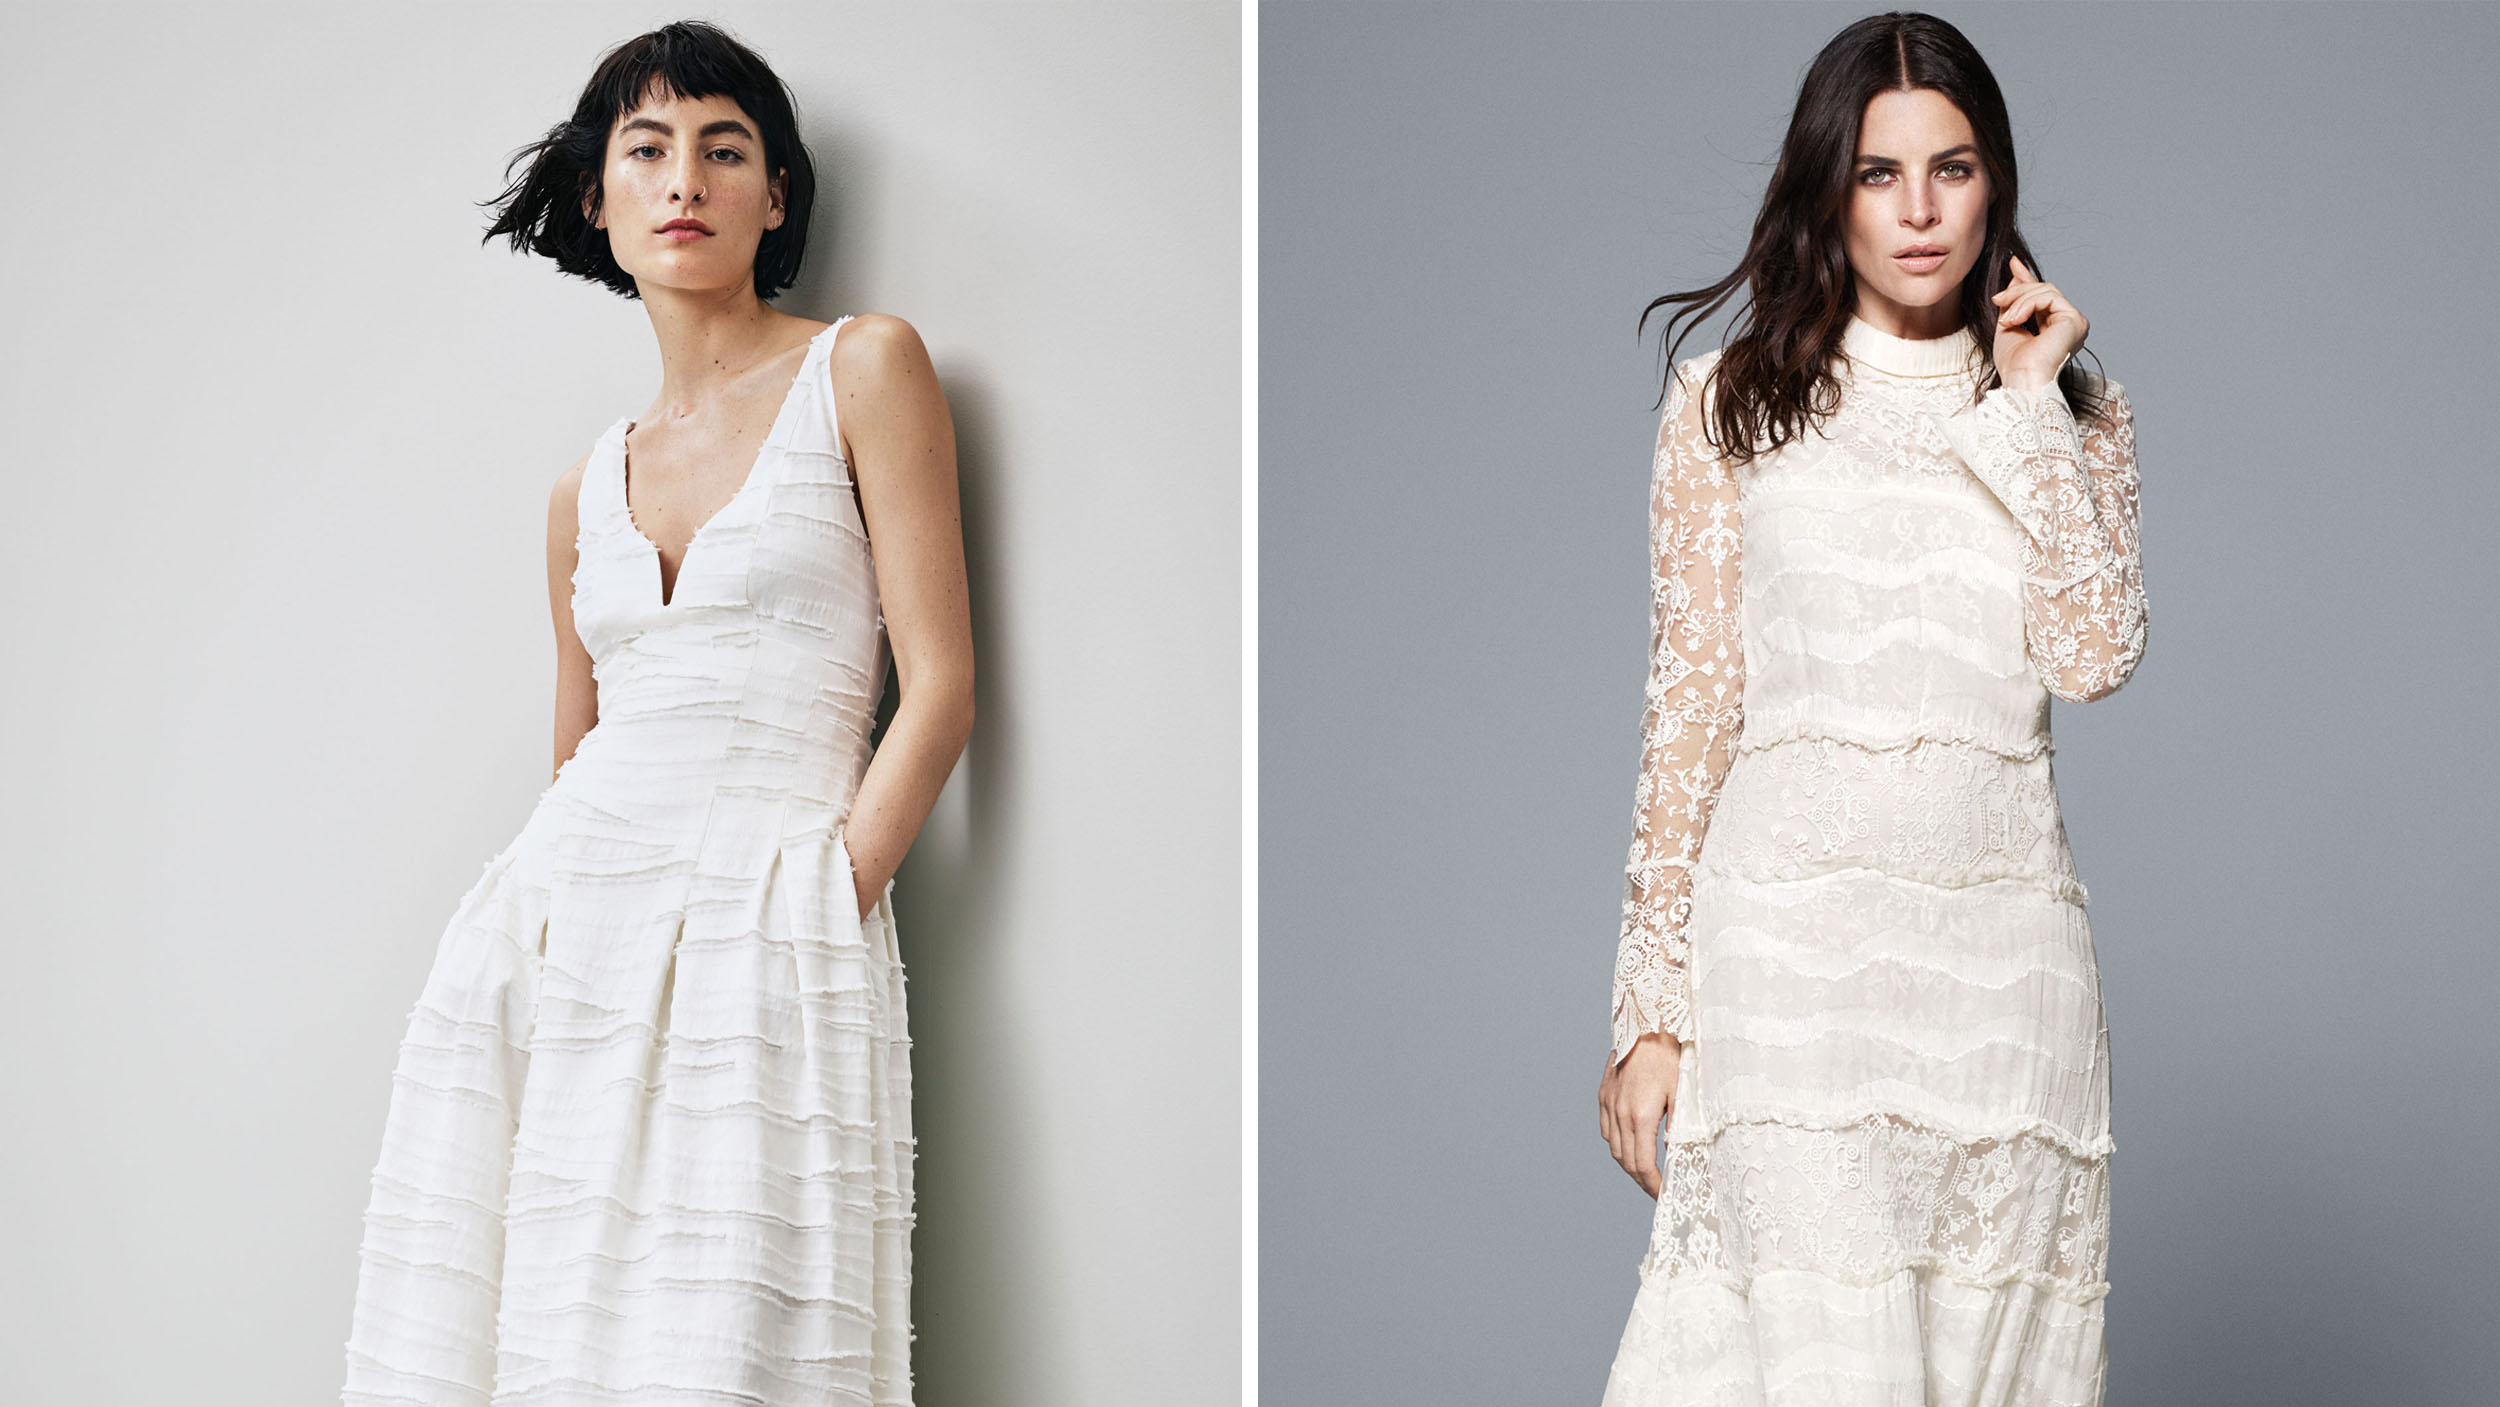 H M New Conscious Collection Features Affordable And Sustainable Wedding Dresses